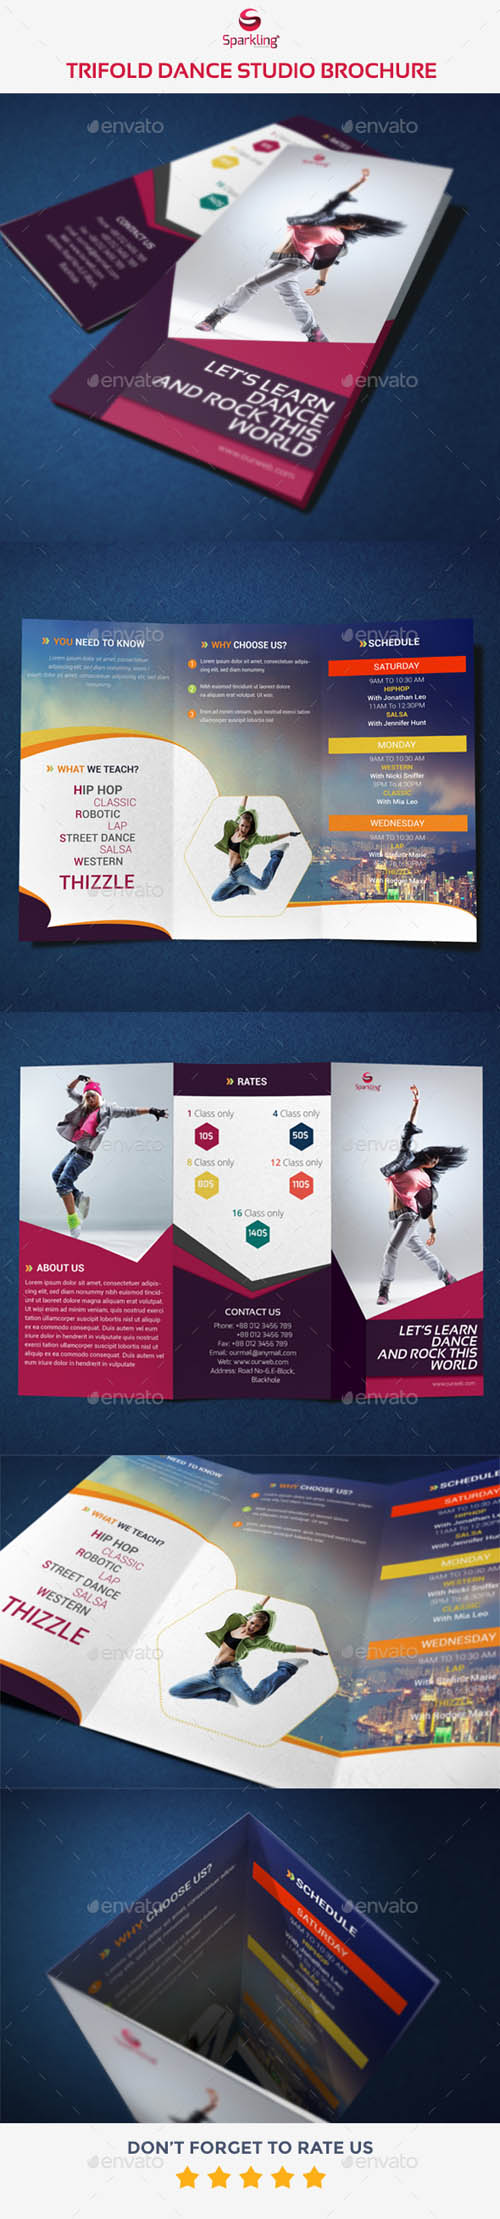 Trifold Dance Studio Brochure   Dance Studio Brochures